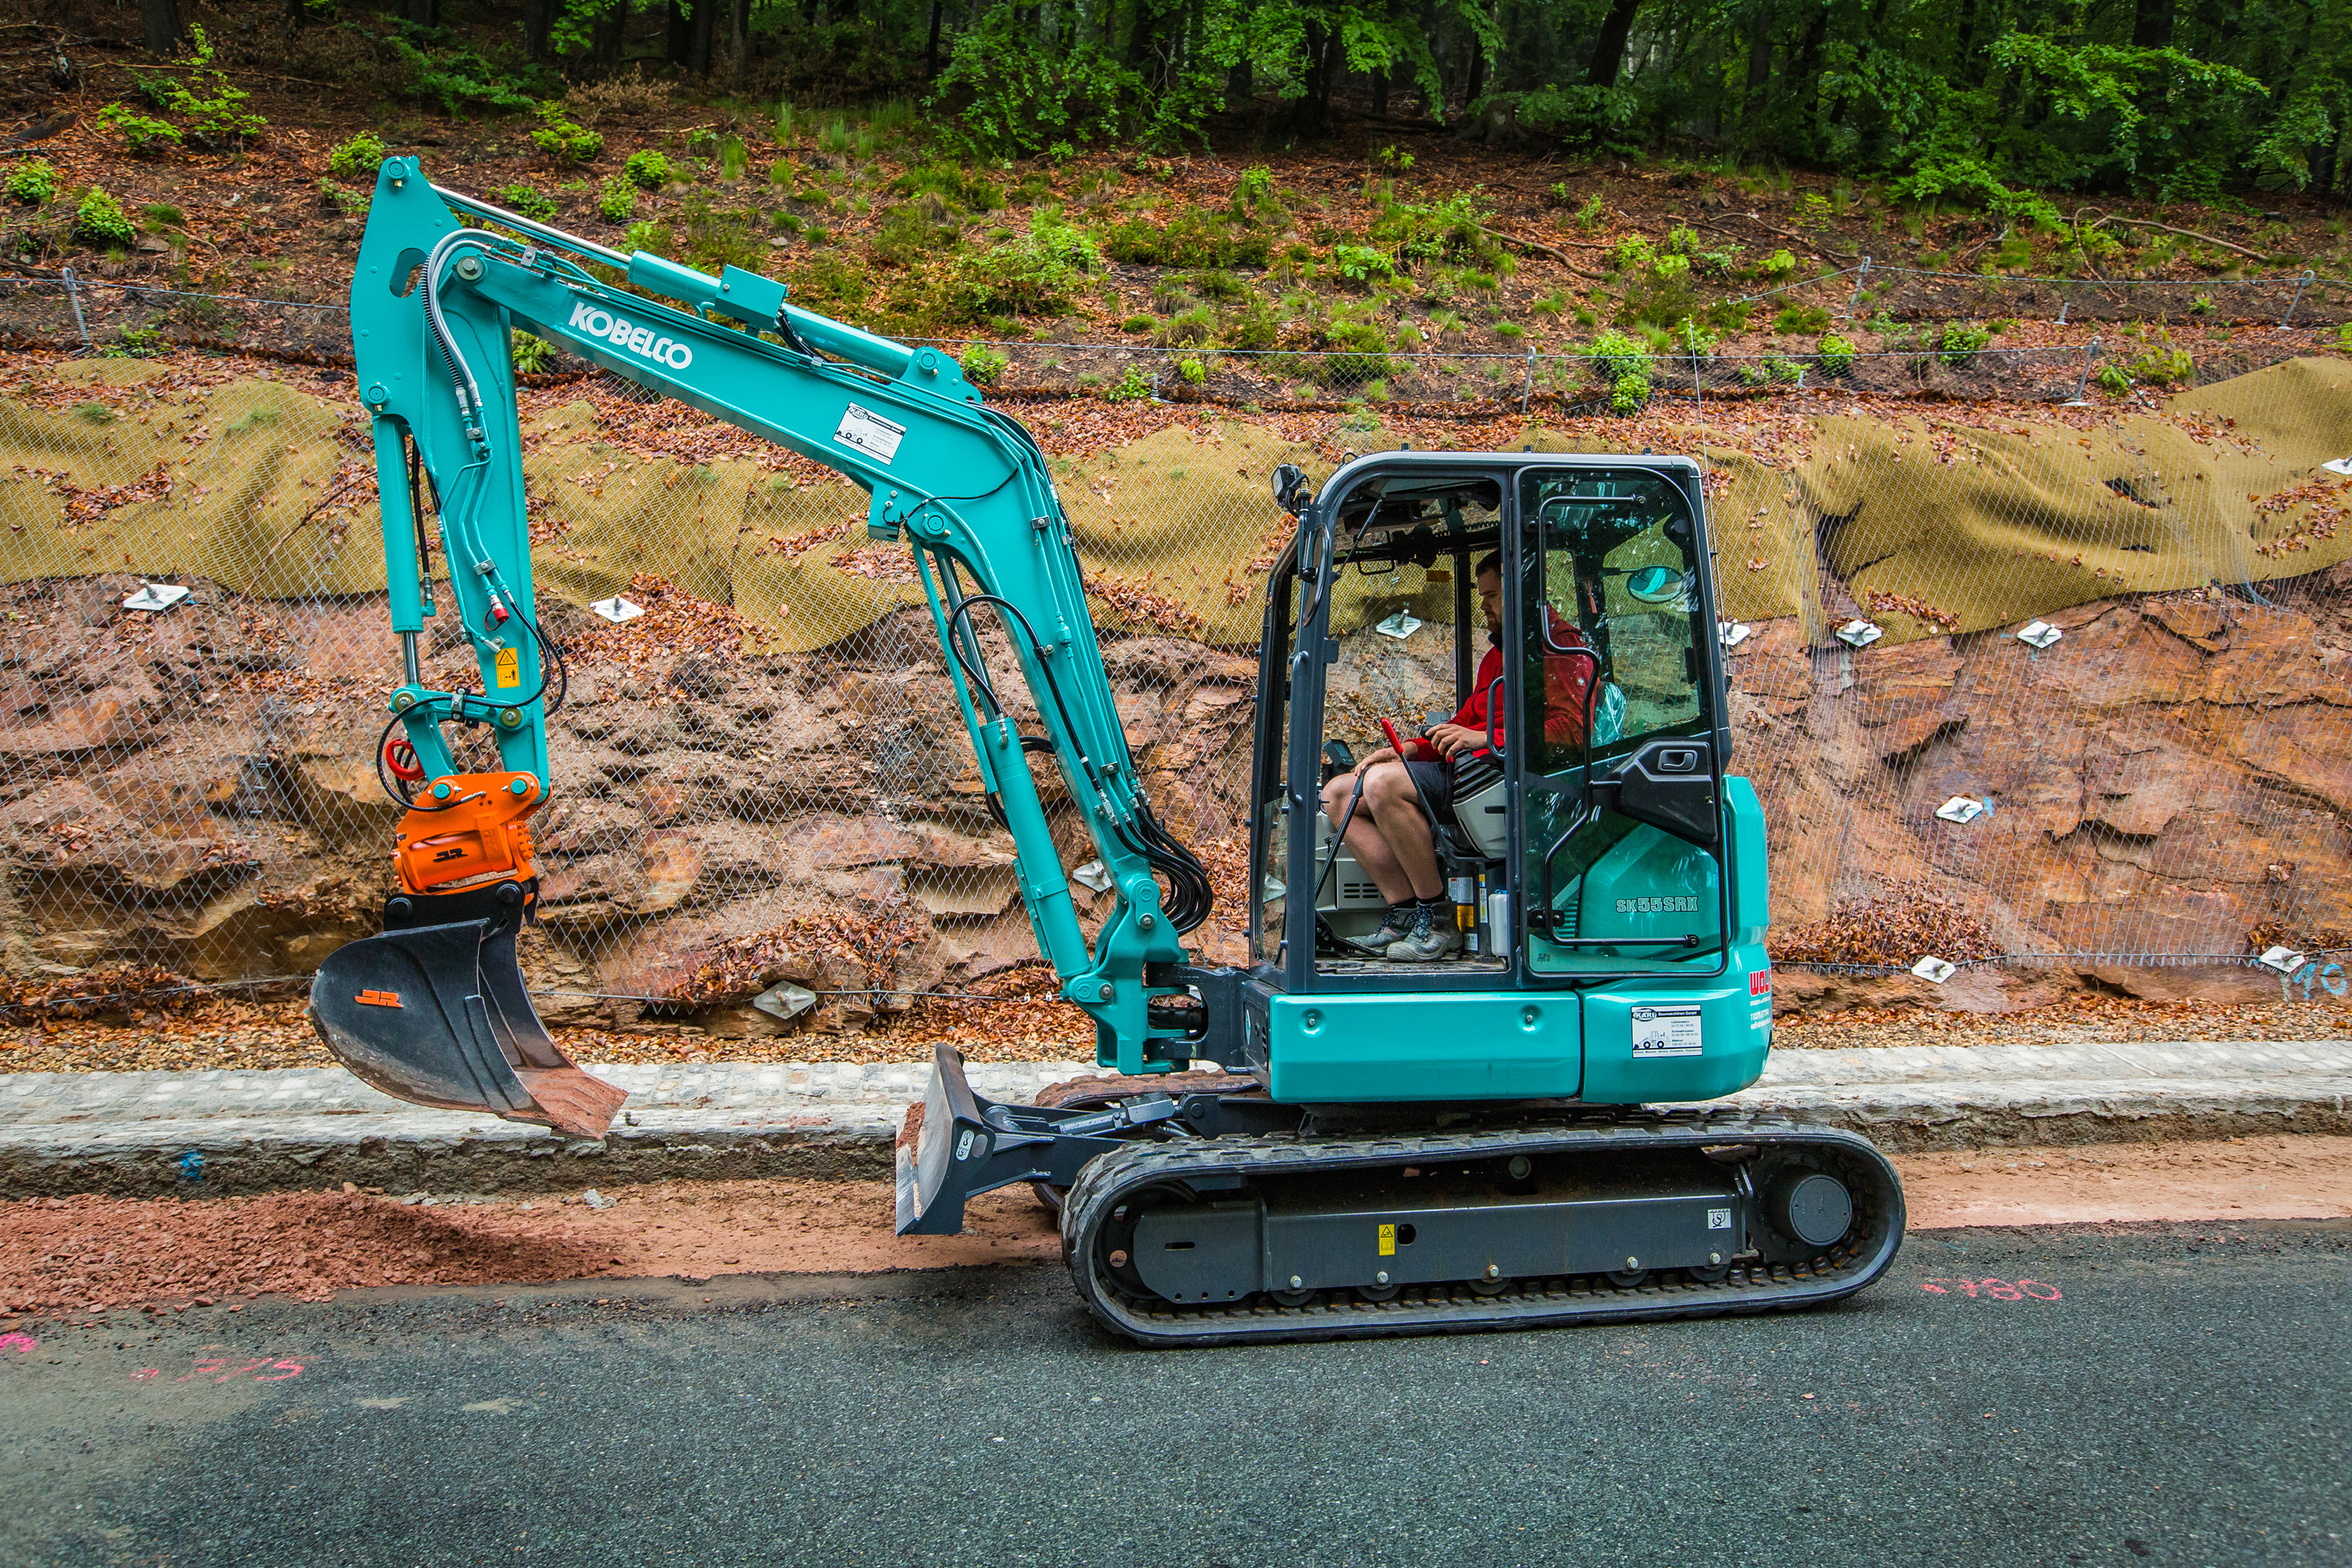 New SK45SRX-6 complements existing line-up of Kobelco Short Radius